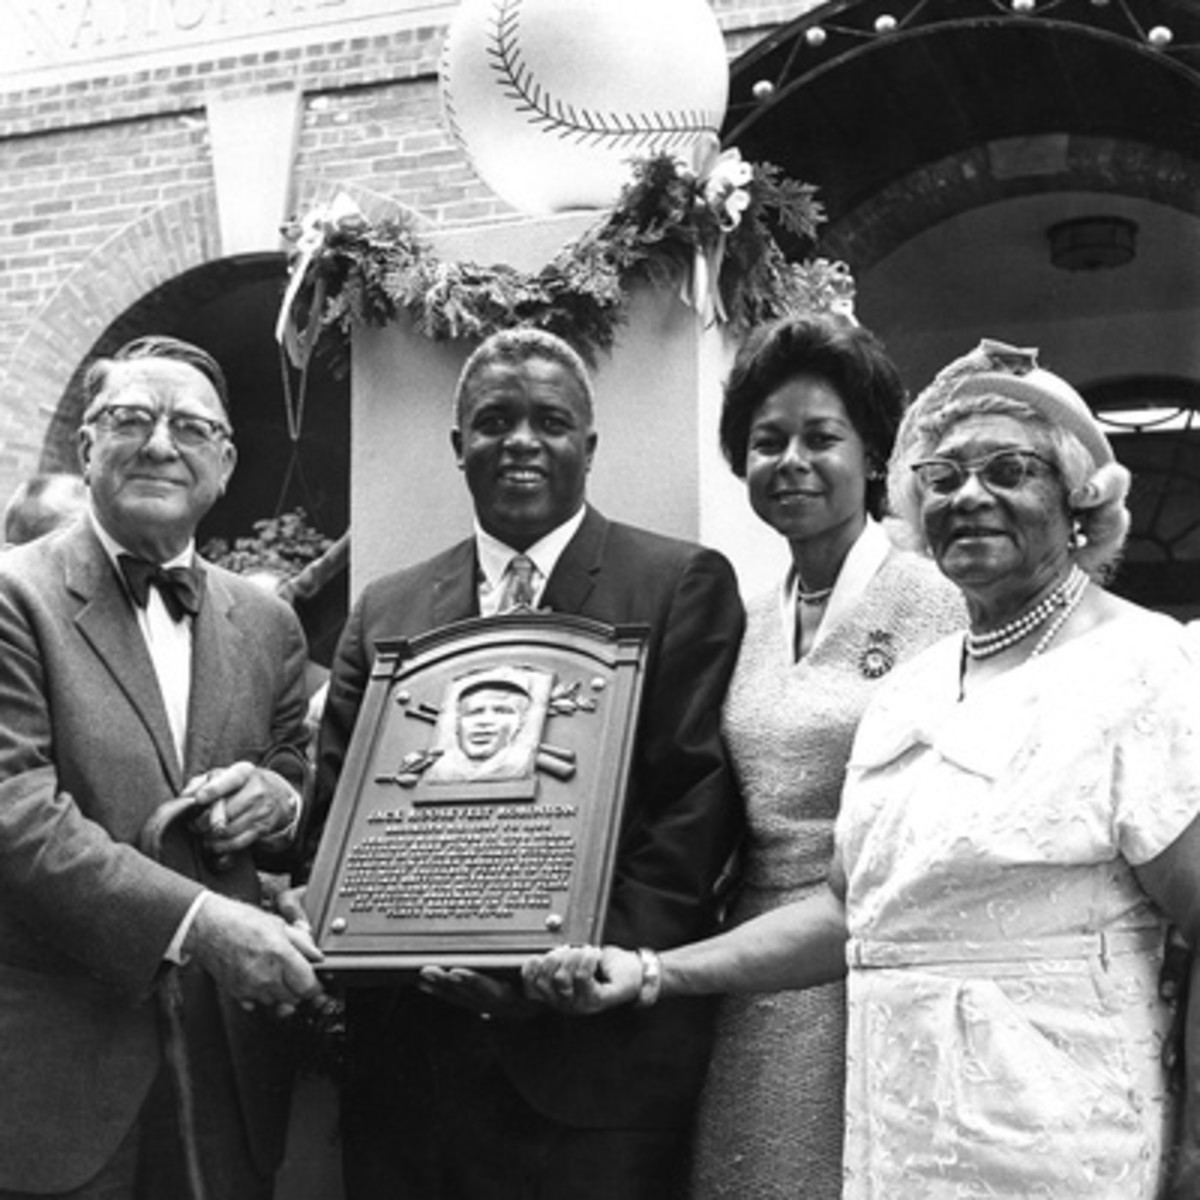 Branch Ricky, Jackie Robinson, Rachel Robinson (wife), Mallie Robinson (mother), Hall of Fame, July 23, 1962. Photo by G. Marshall Wilson.